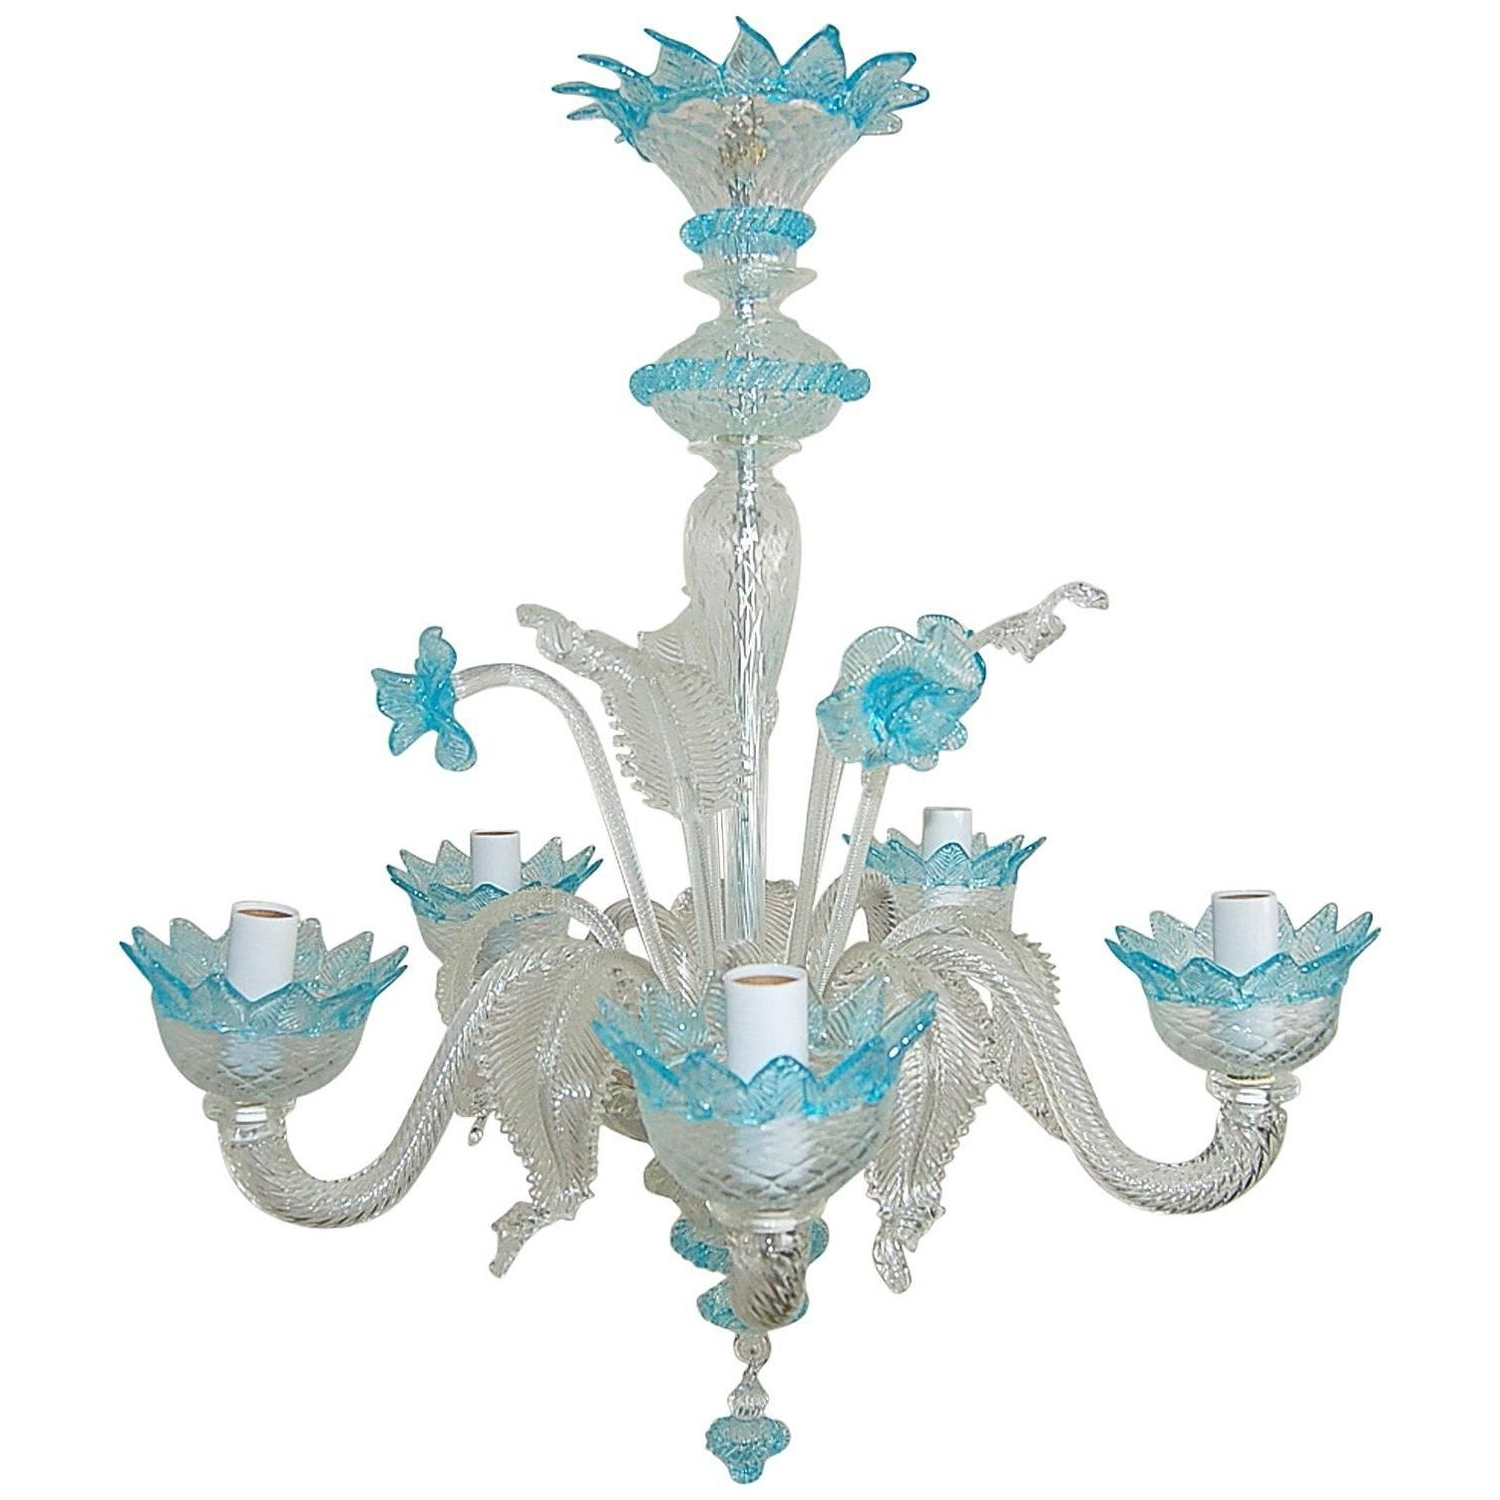 Fashionable Chandelier Murano Glass Of Crystal With Blue Accents For Sale At 1stdibs With Regard To Turquoise Blue Glass Chandeliers (View 19 of 20)